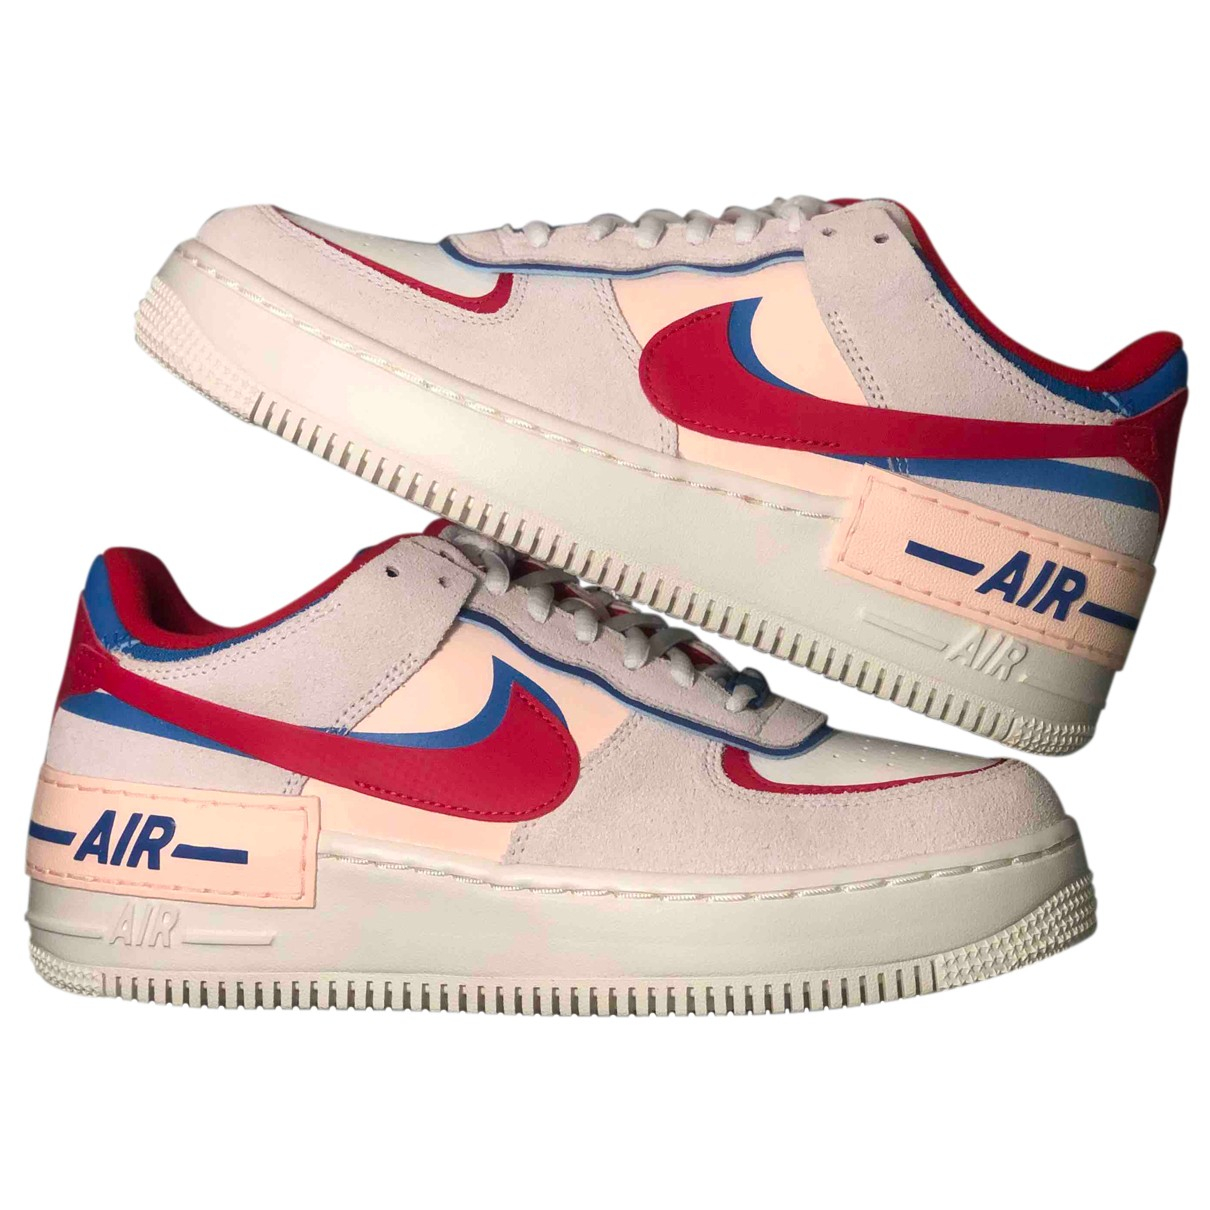 Nike Air Force 1 Grey Leather Trainers for Women 39 EU